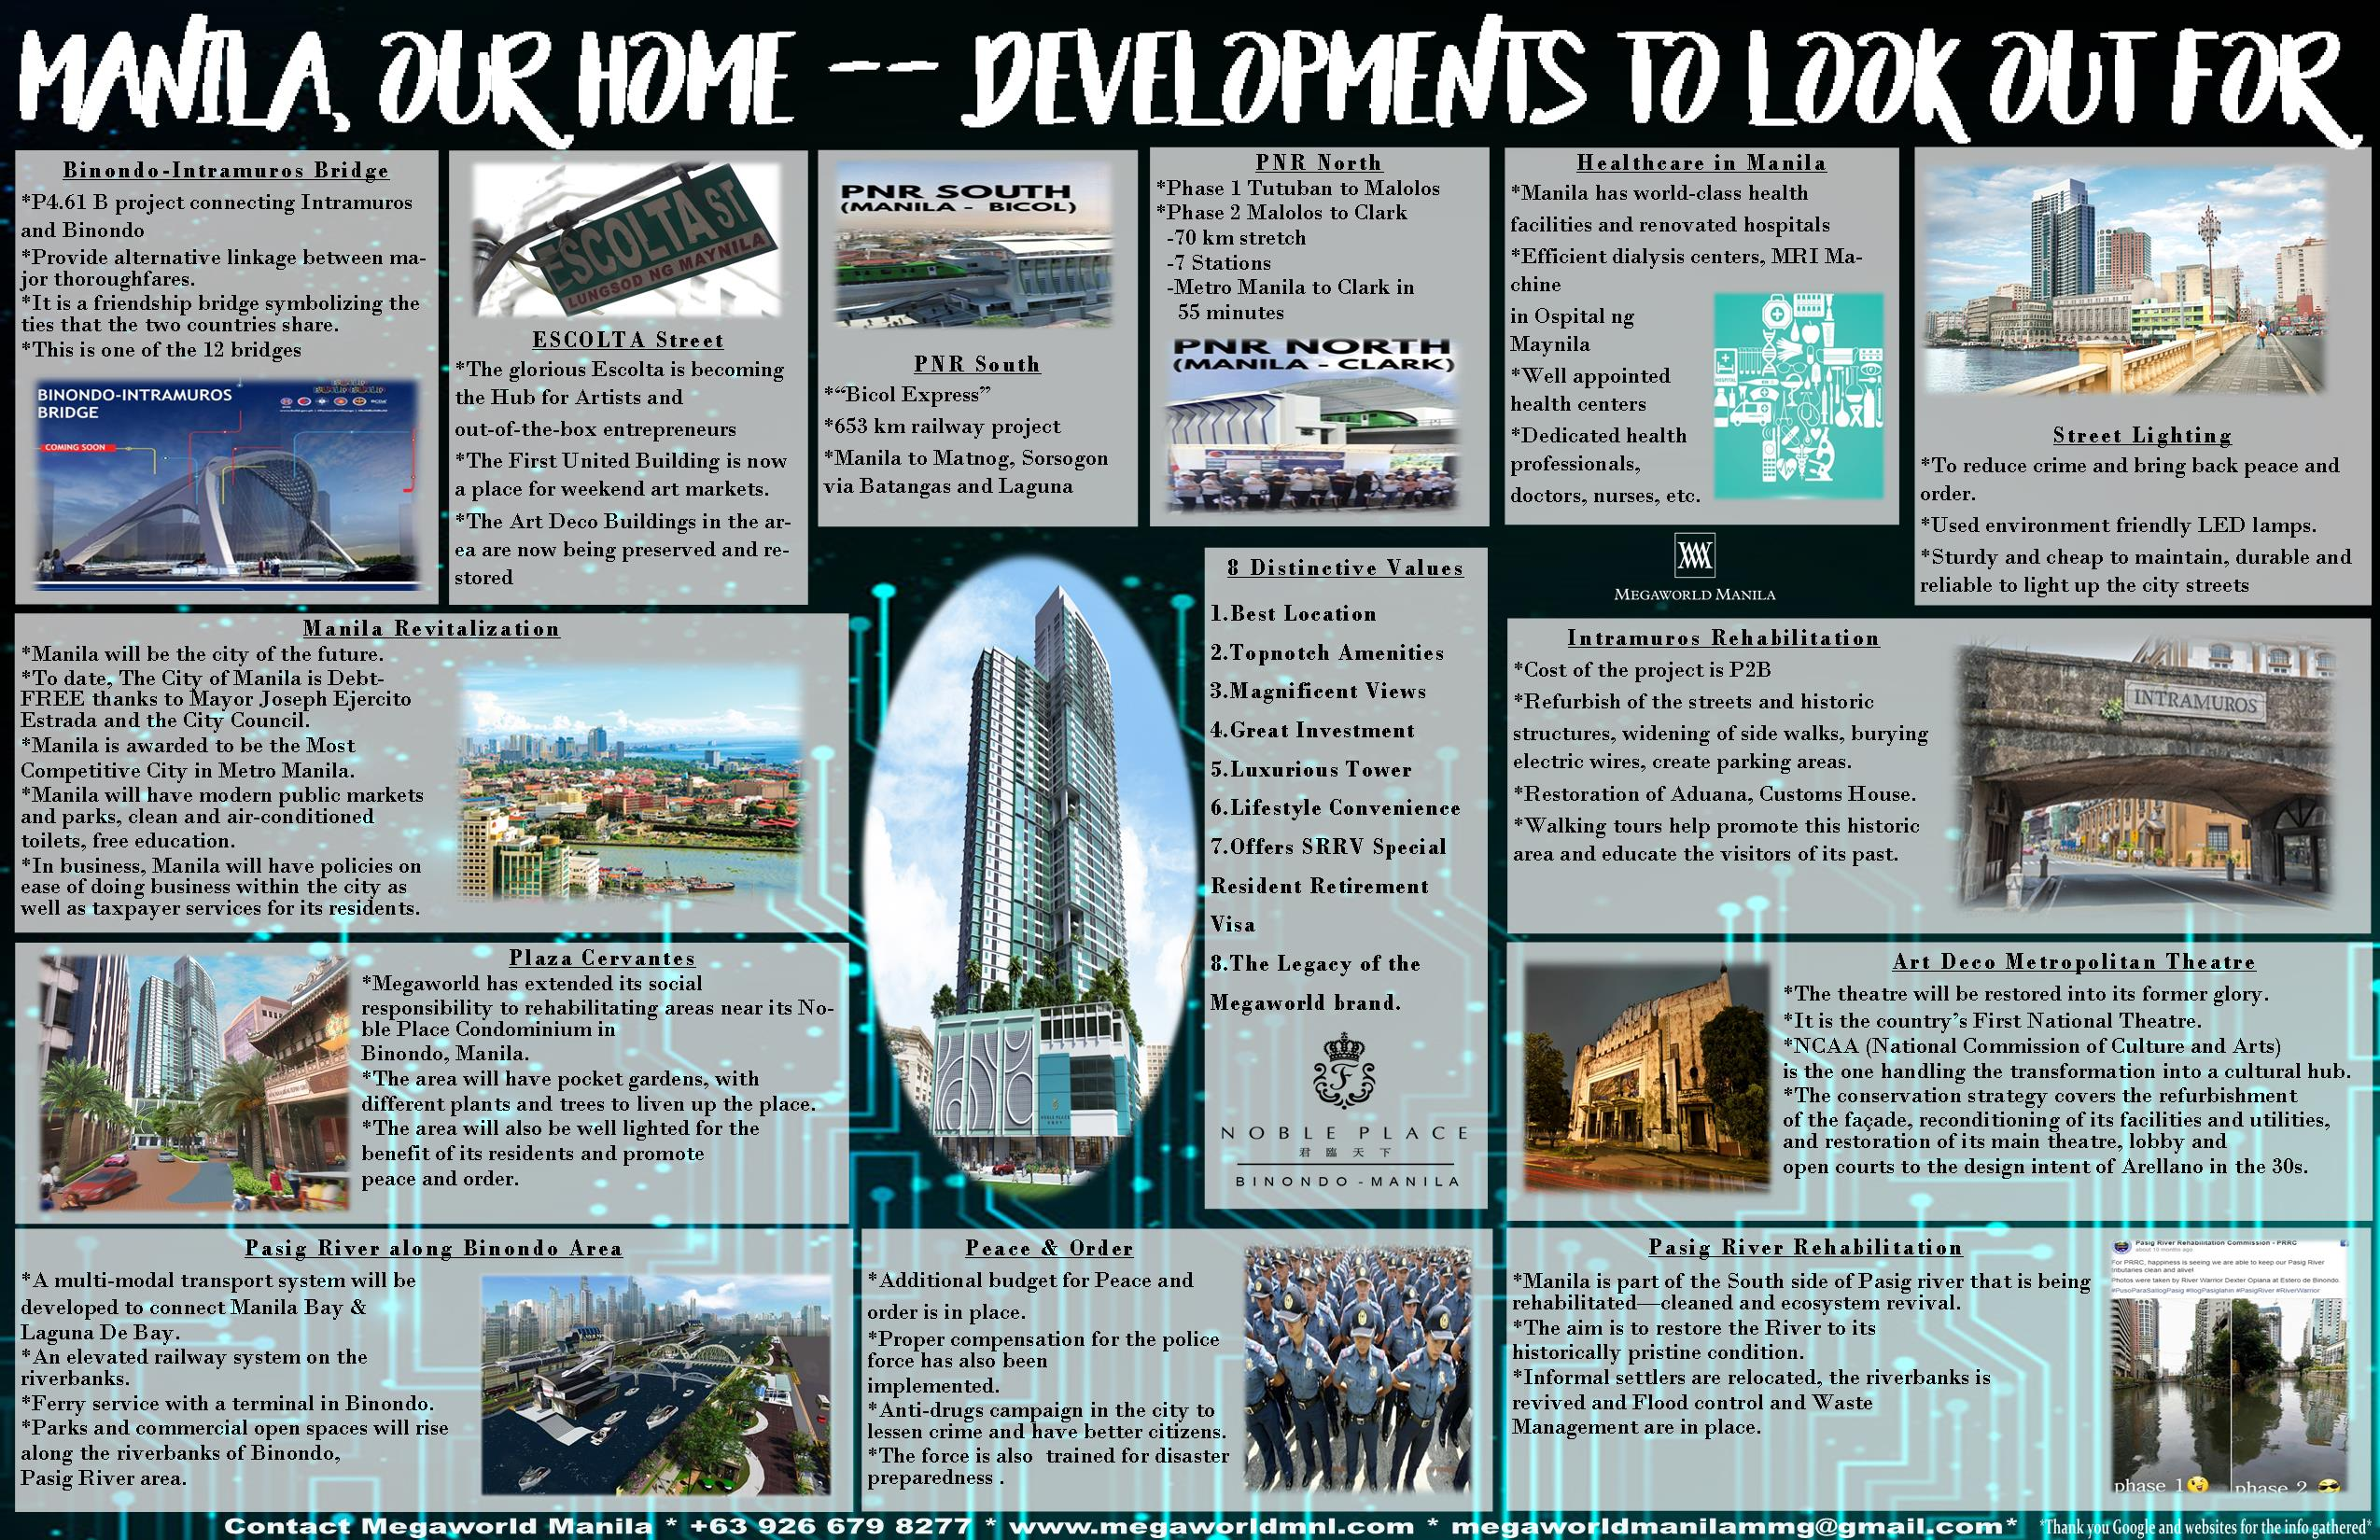 Manila, Our home — Developments To Look Out For